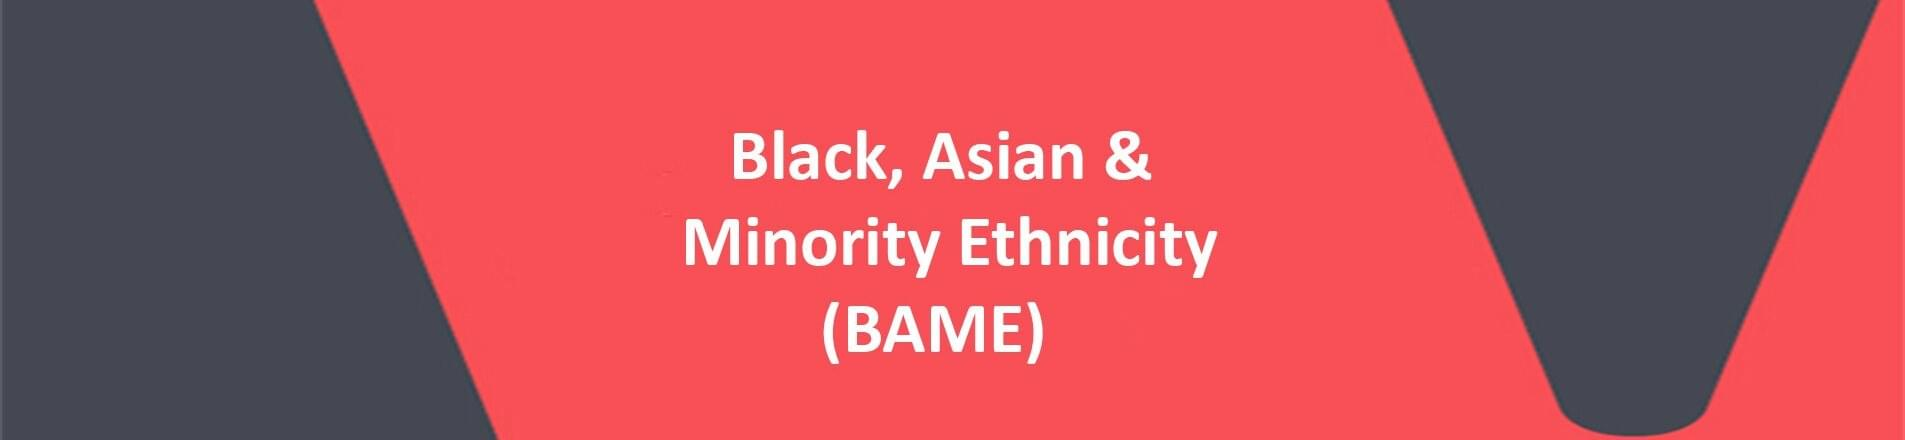 Red Background with white text spelling Black, Asian & Minority Ethnicity (BAME)